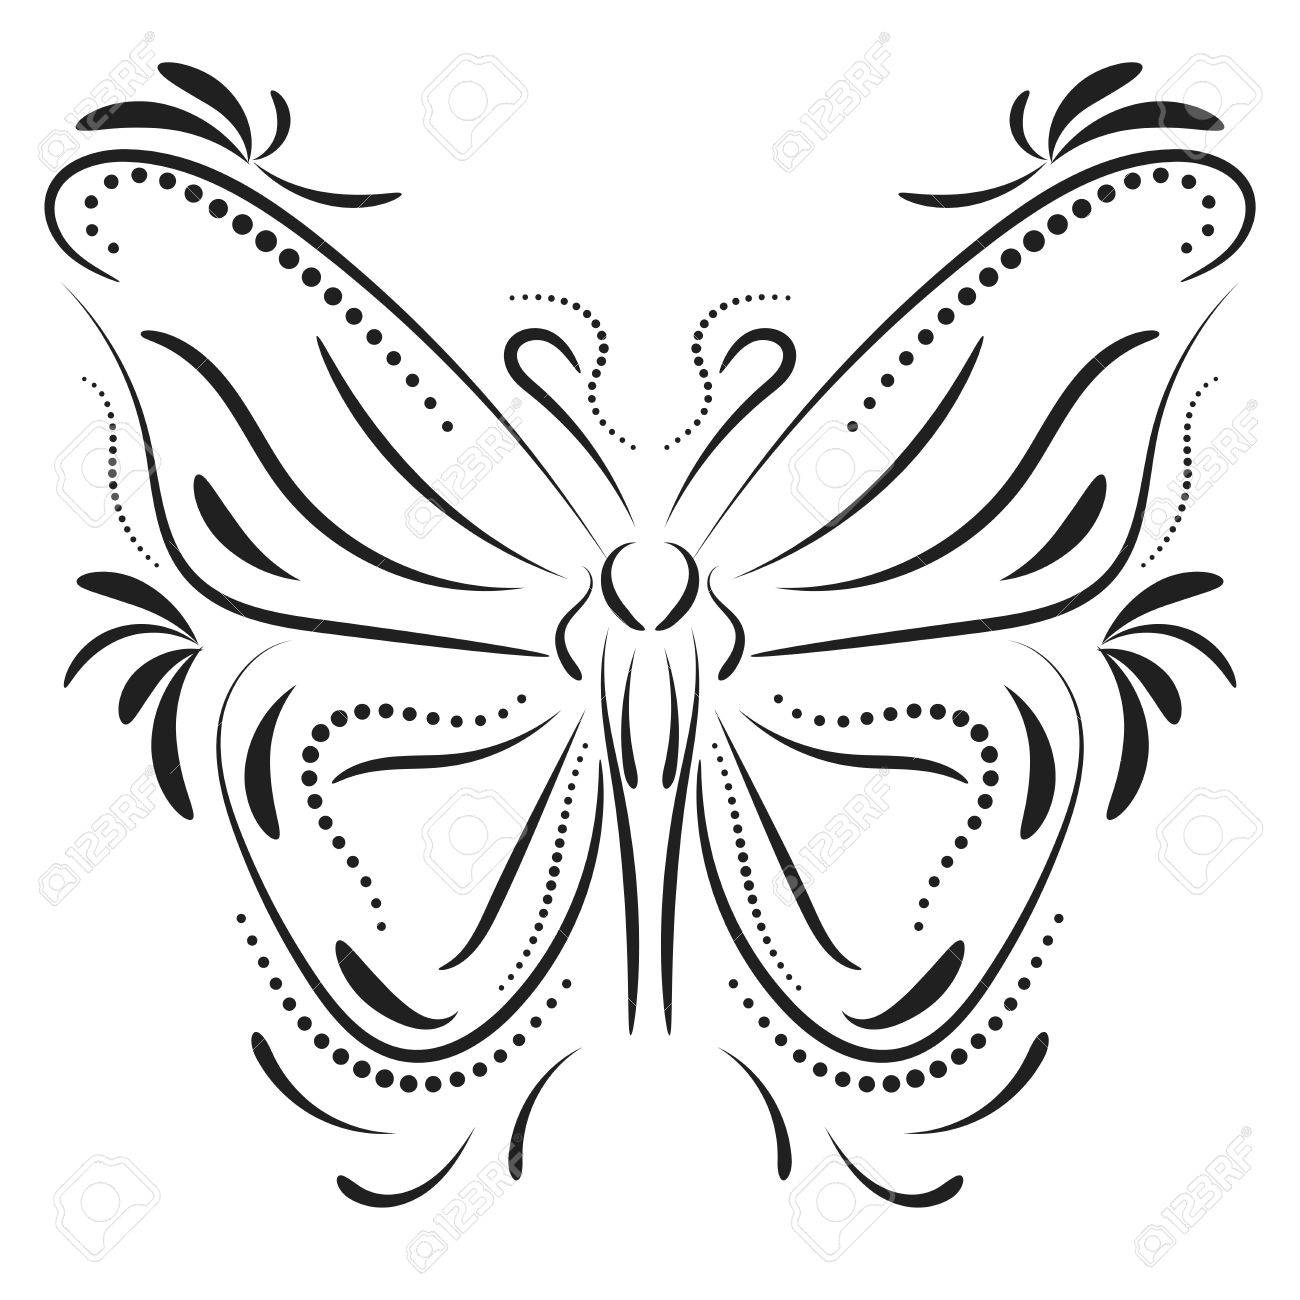 a02e9630789d2 Decorative Butterfly Element Tattoo Royalty Free Cliparts, Vectors ...